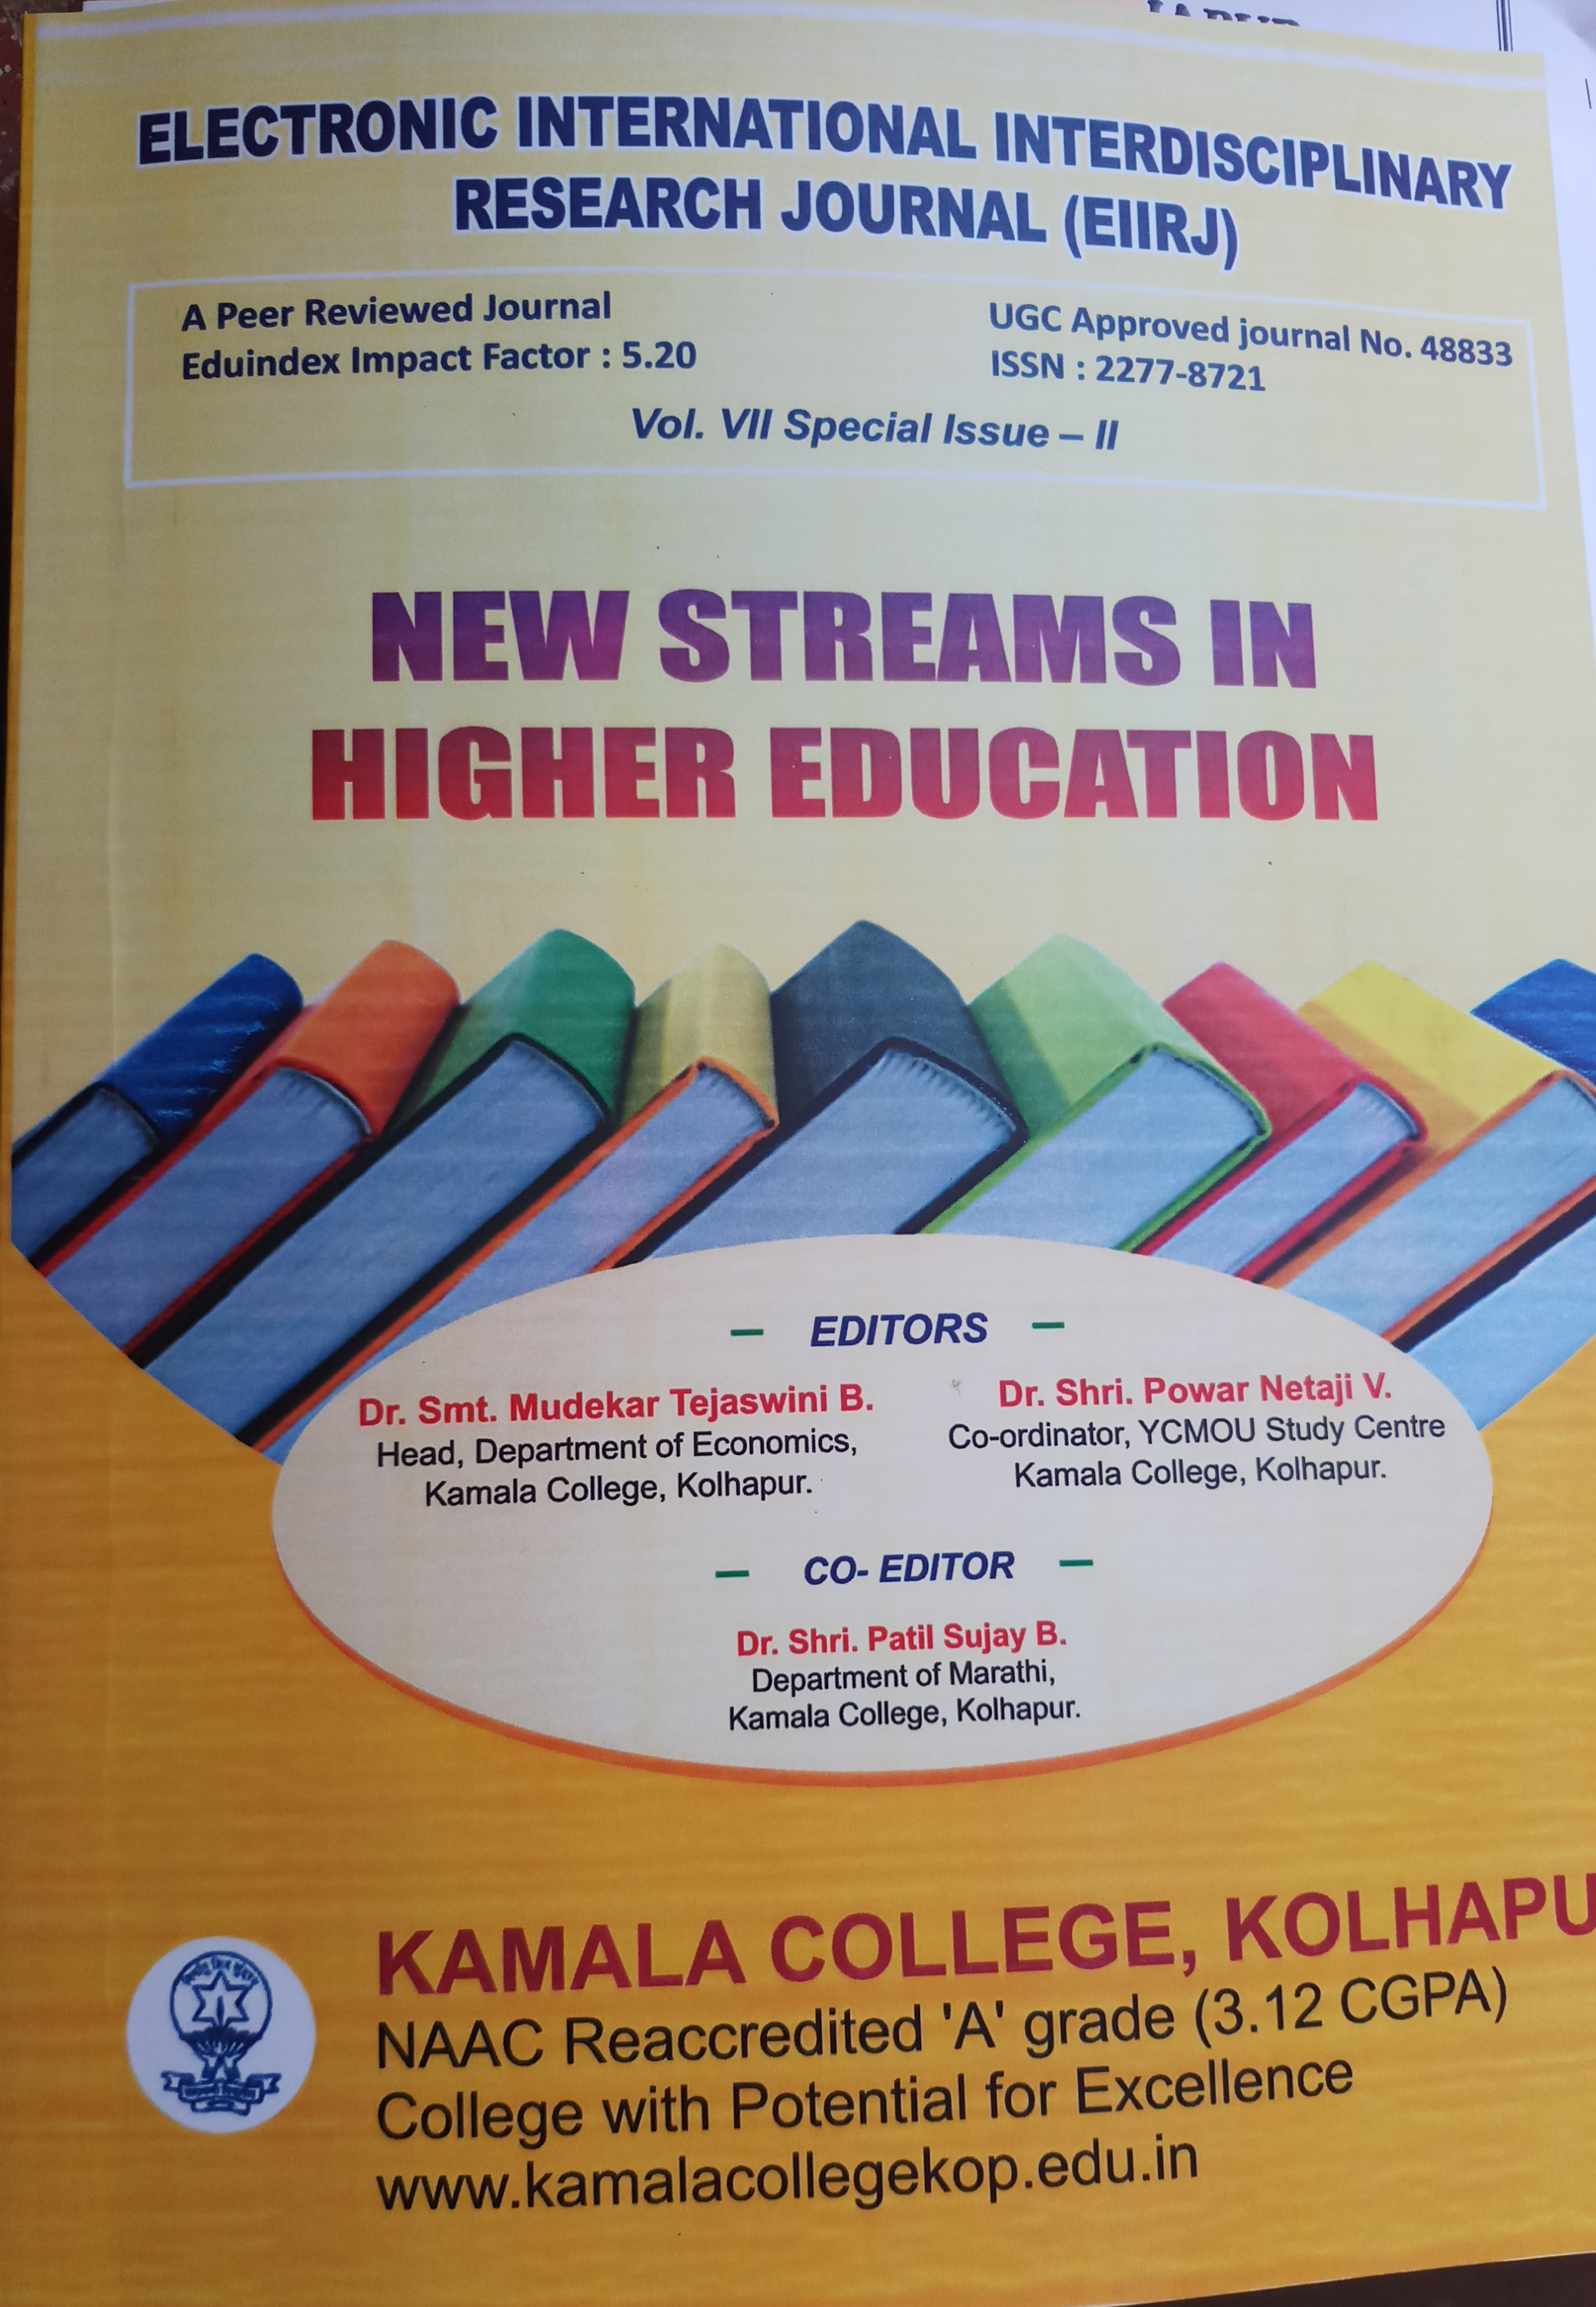 UGC approved International Research Journal | Kamala College